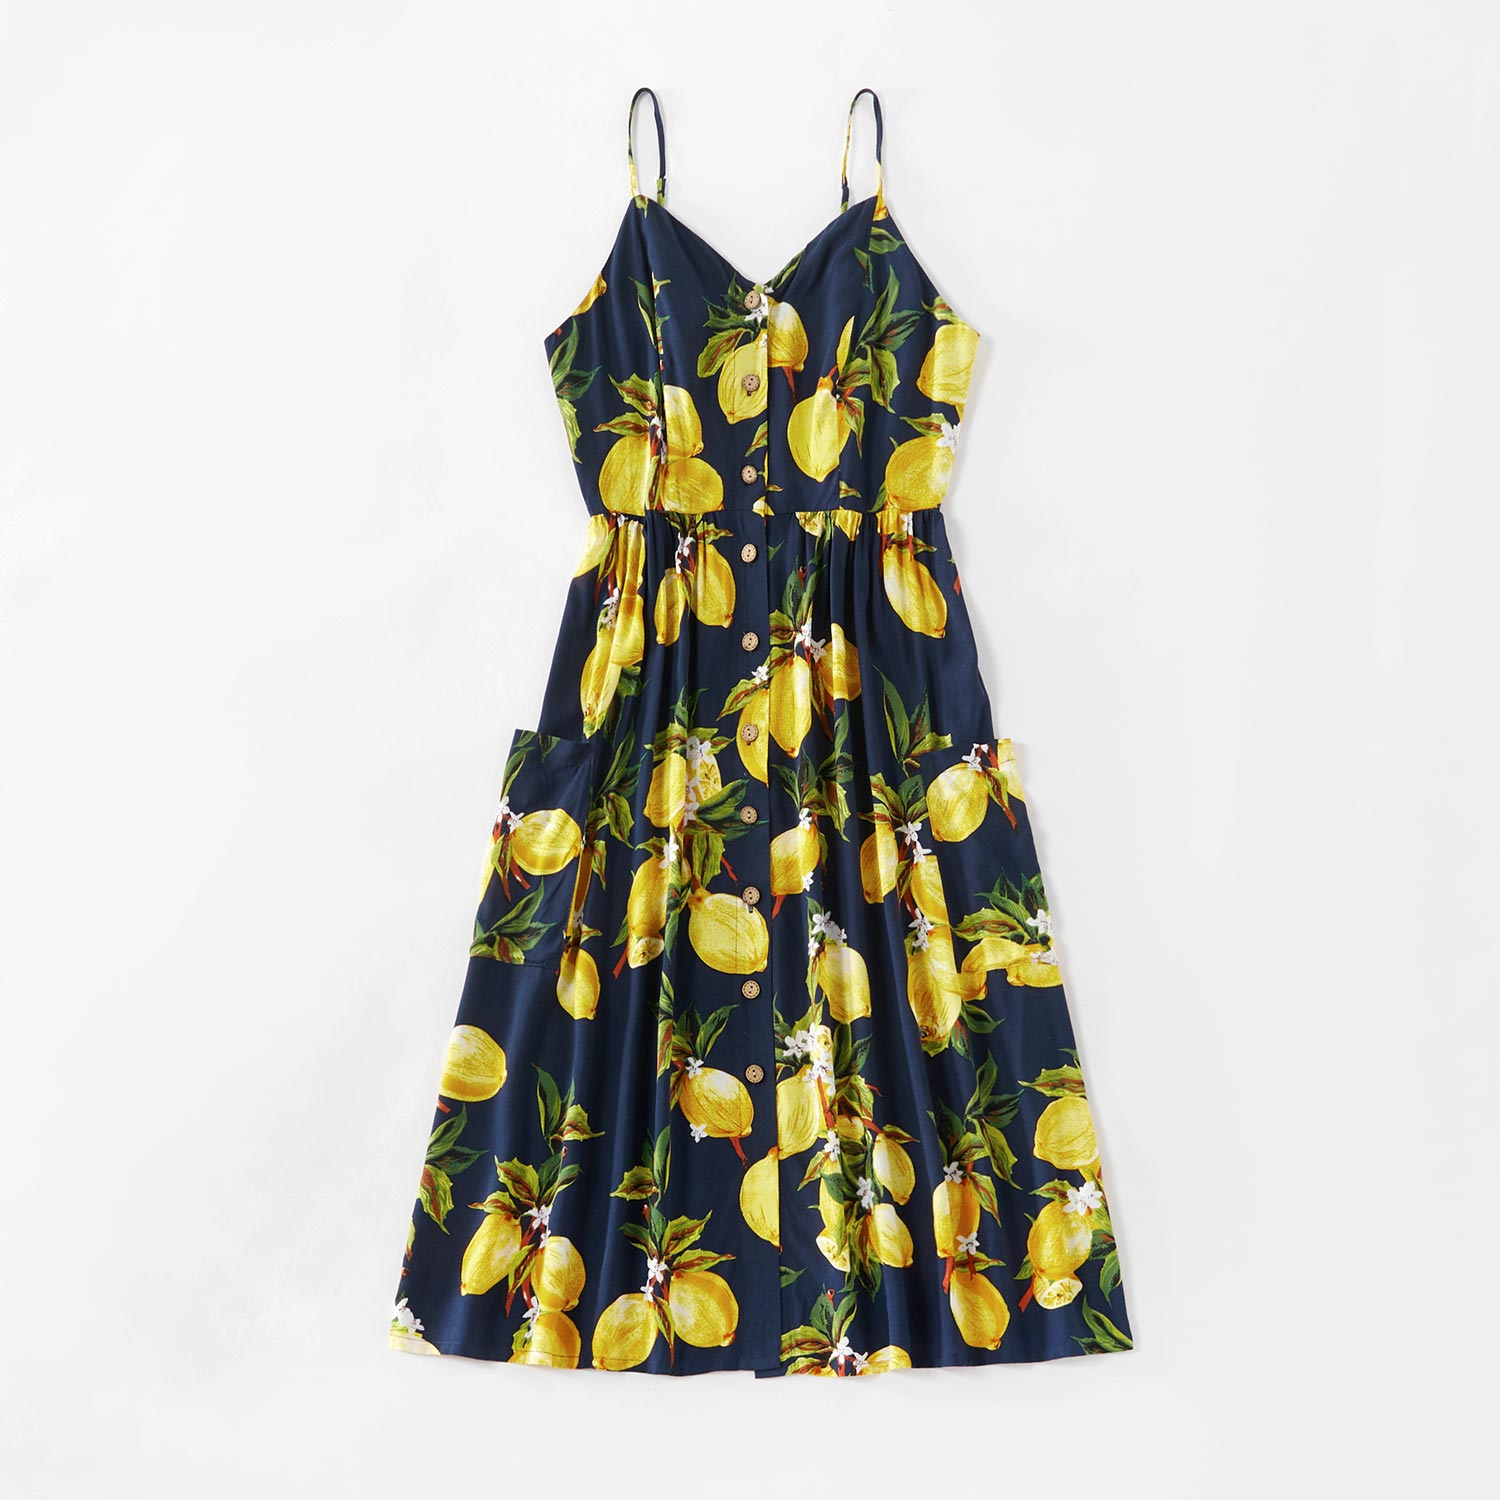 Family Matching Dress Lemon Series | Tank Dresses, Rompers, and Tops | Matching Outfits Family Look Sets